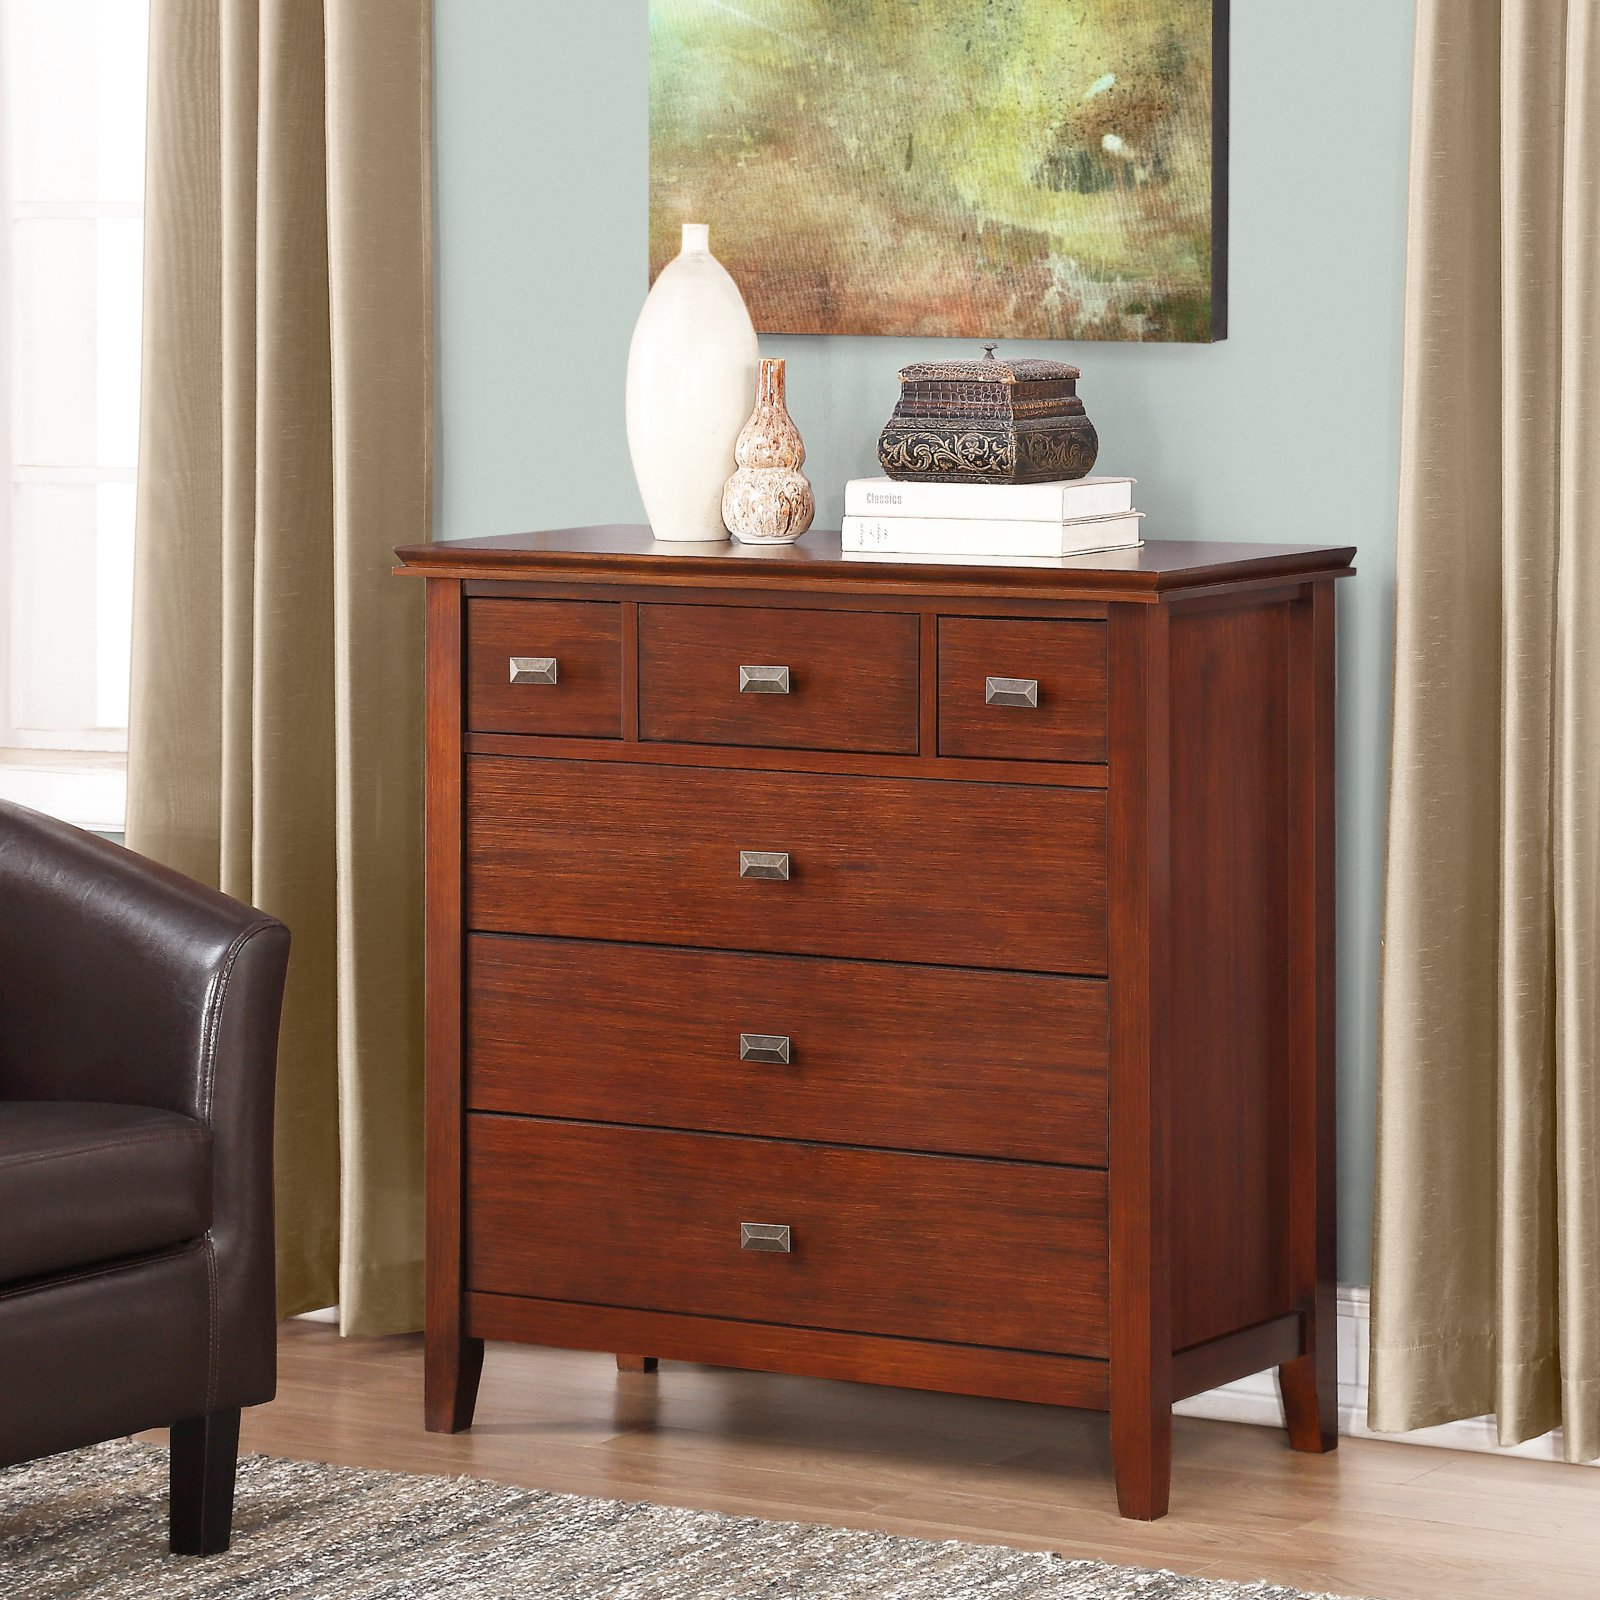 Simpli Home Artisan Bedroom Chest of Drawers